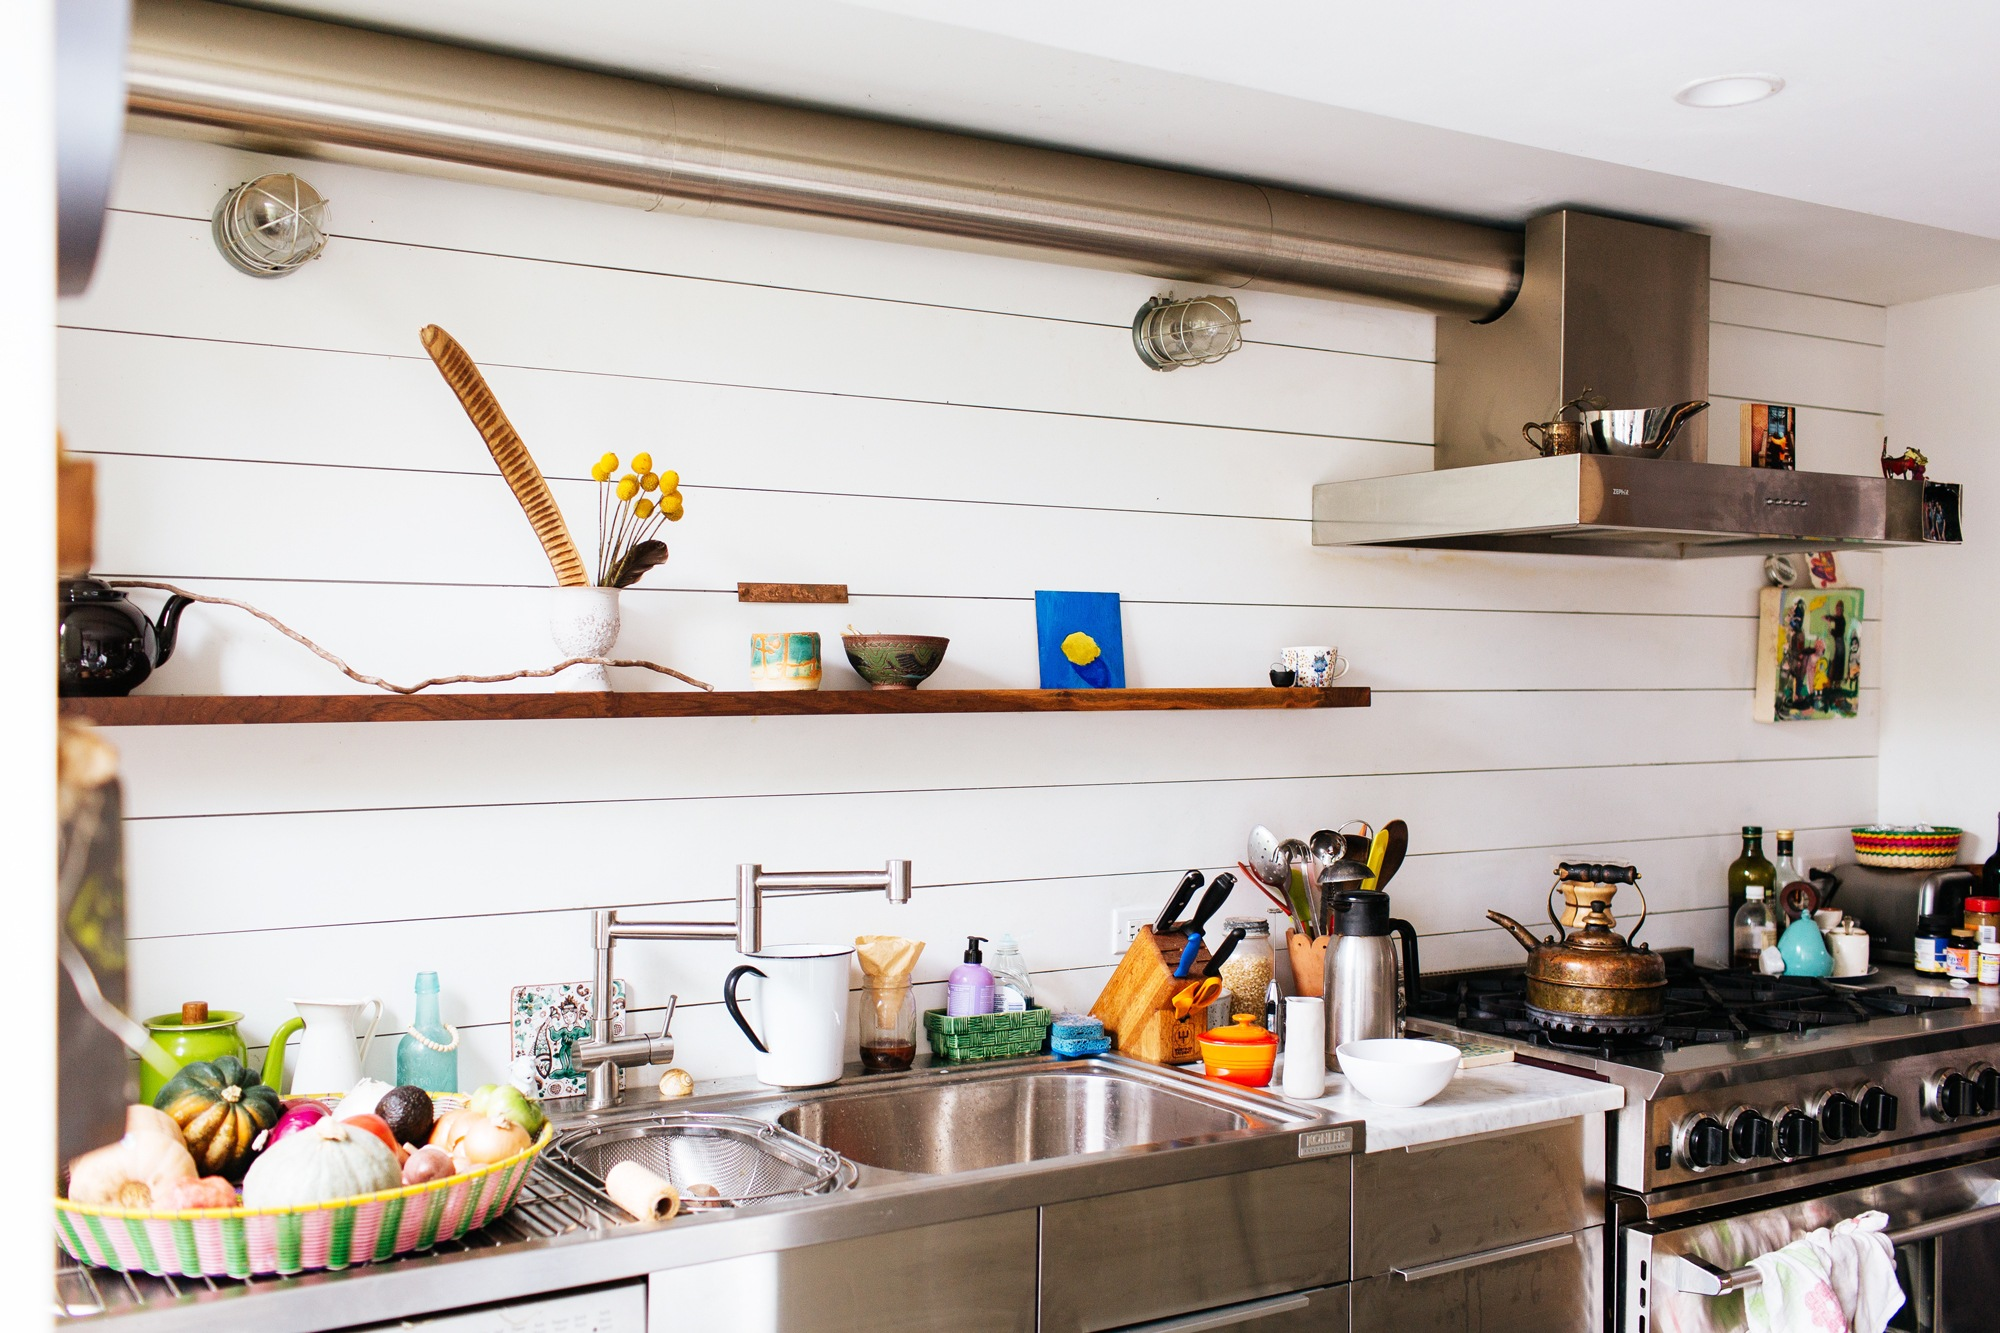 mysqft-amy-helfand-kitchen-edited2